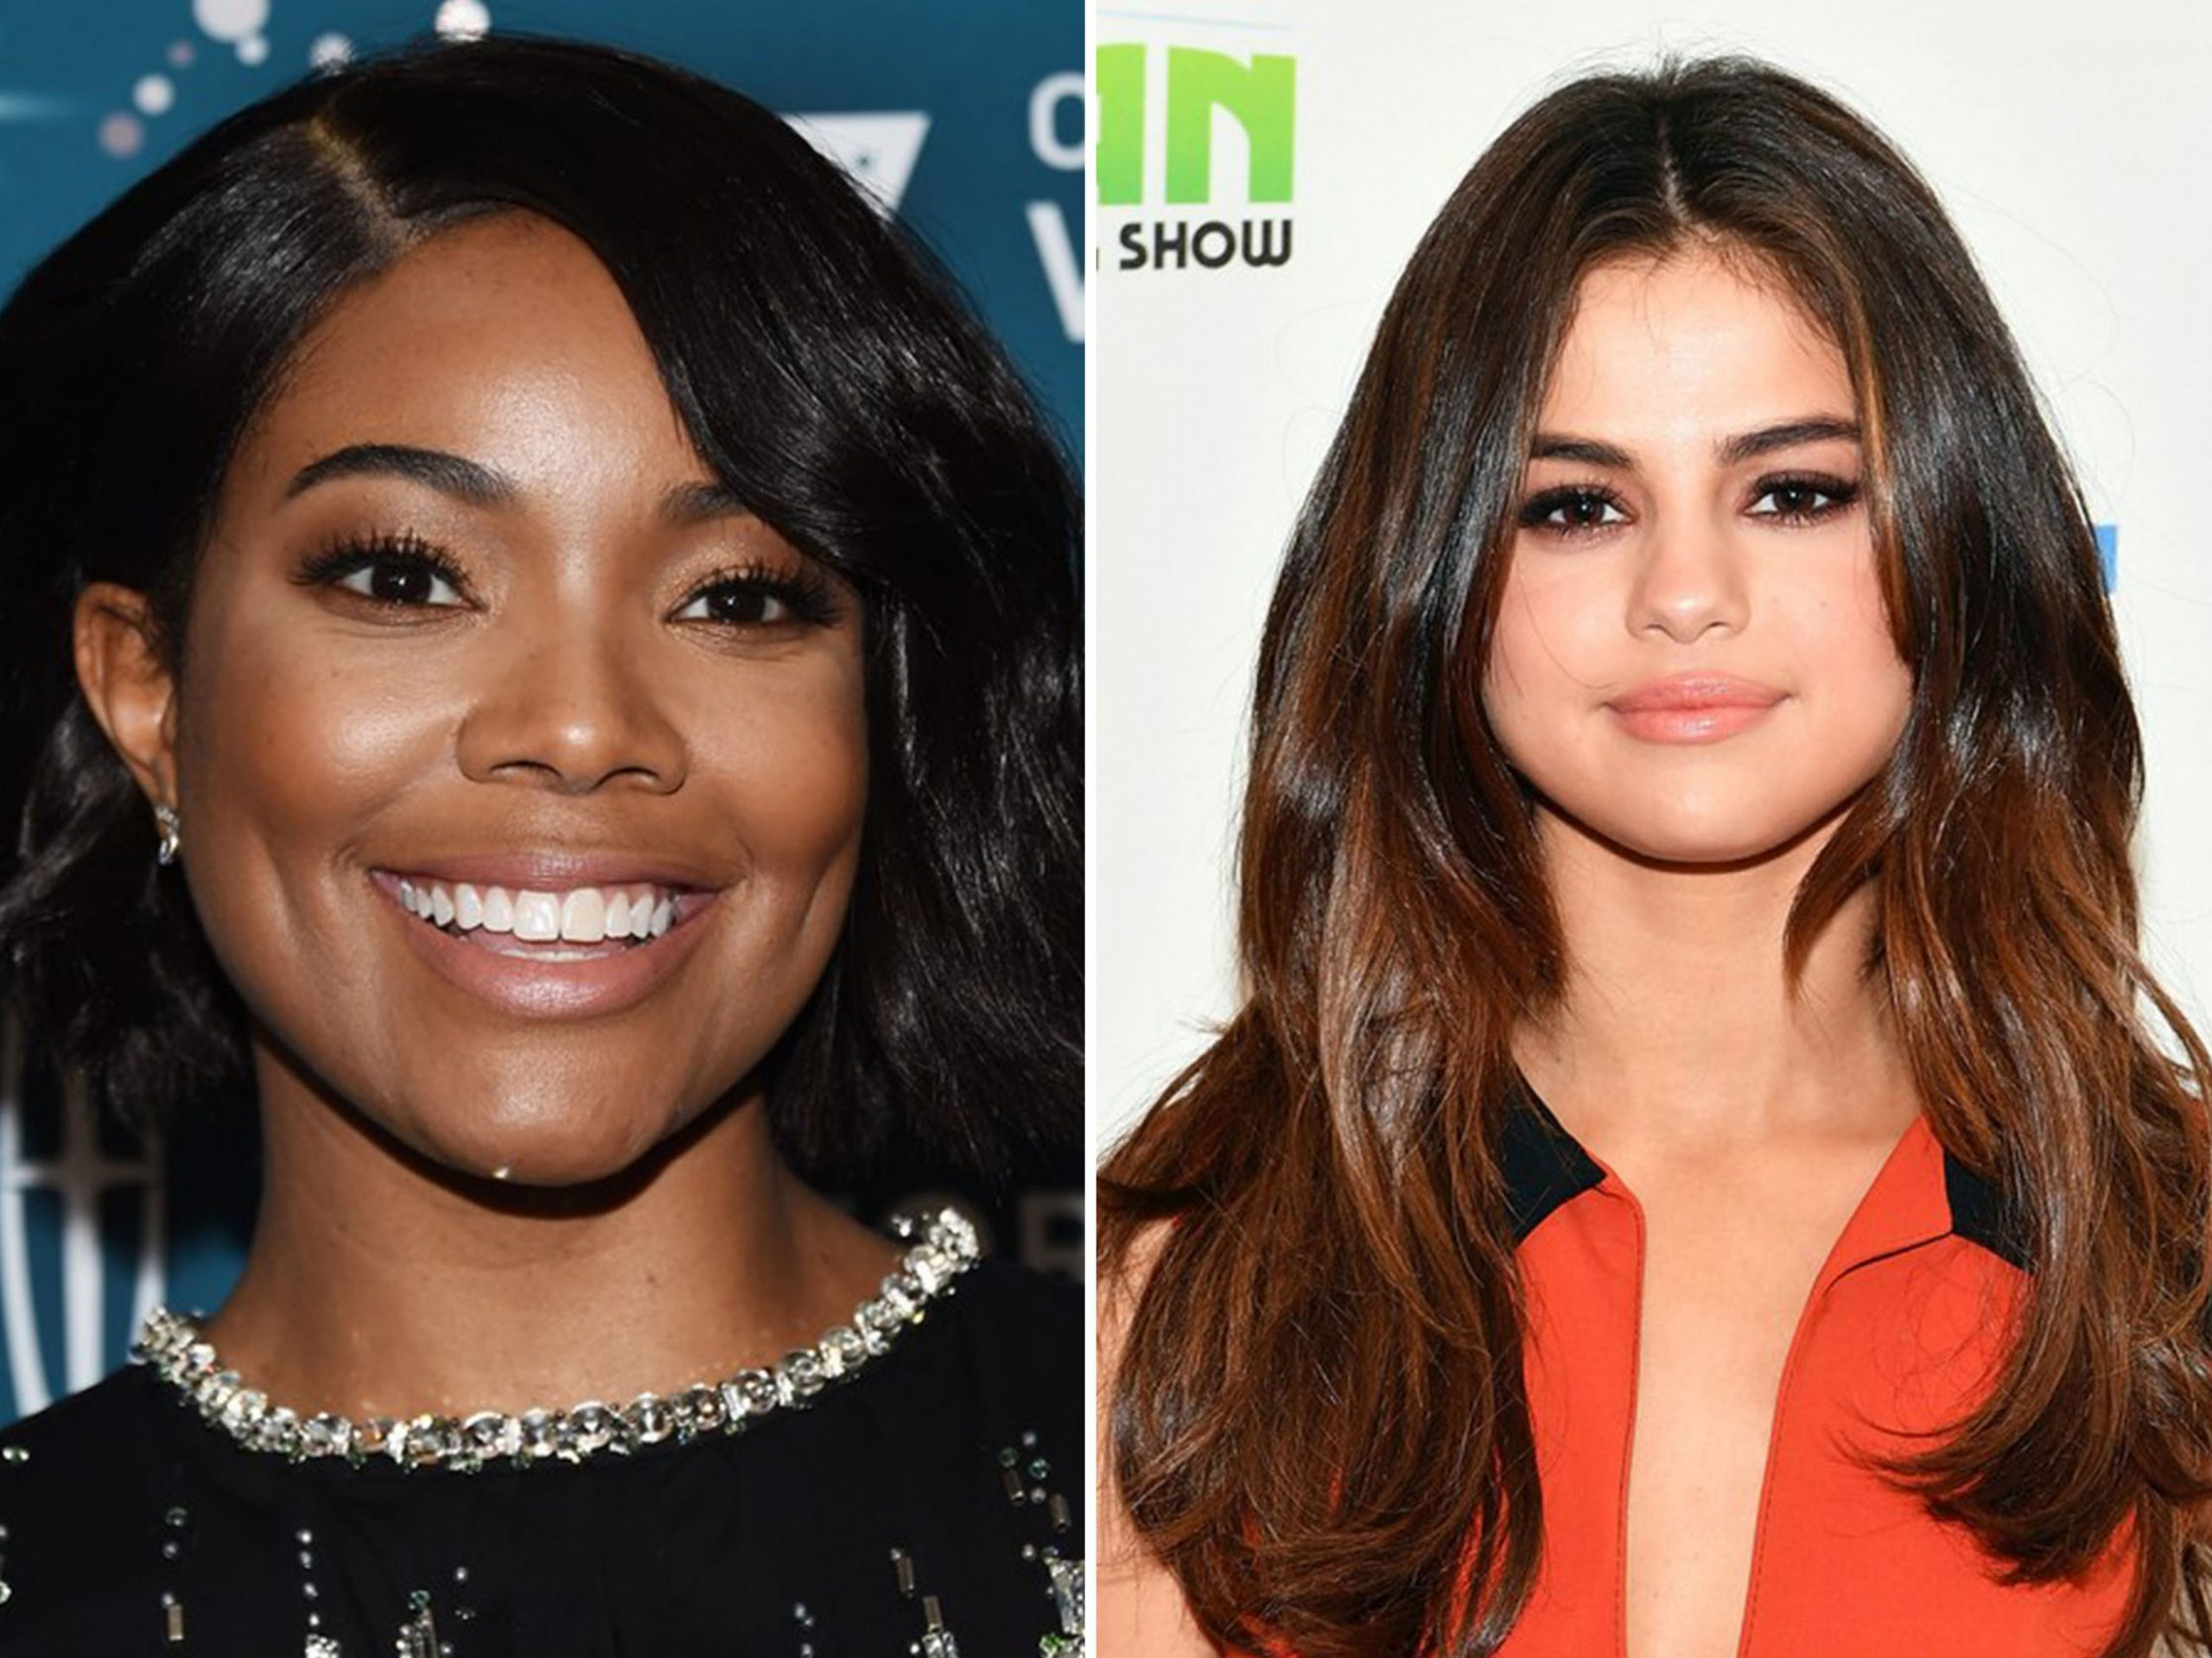 The 8 Best Haircuts For Round Faces, According To Stylists Allure Round Face Shape Hairstyles